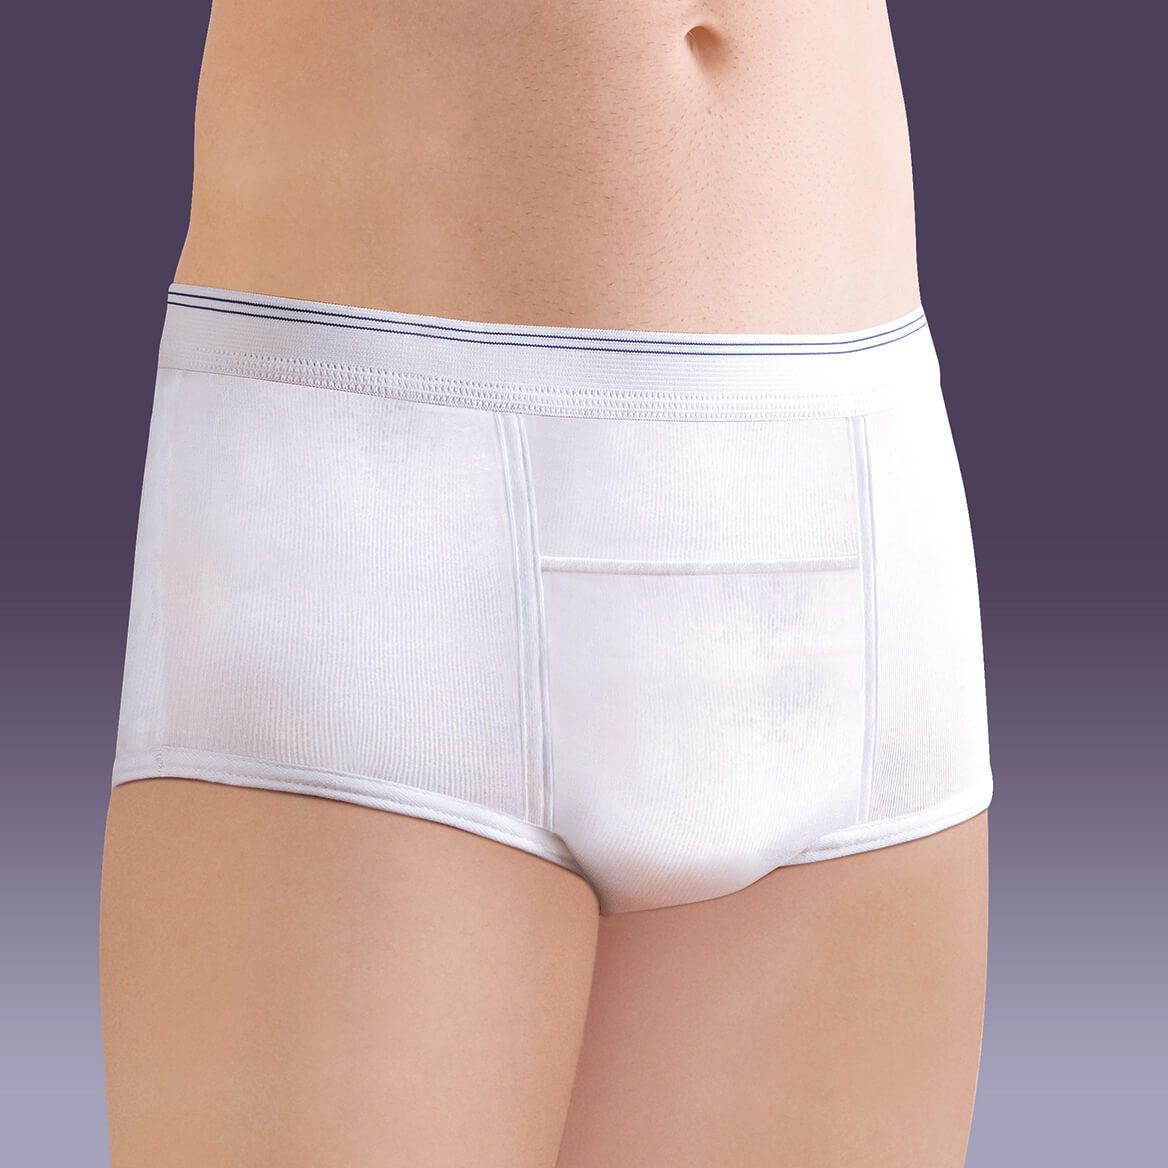 Incontinence Underpants Mens Super Absorbency S/3-370071